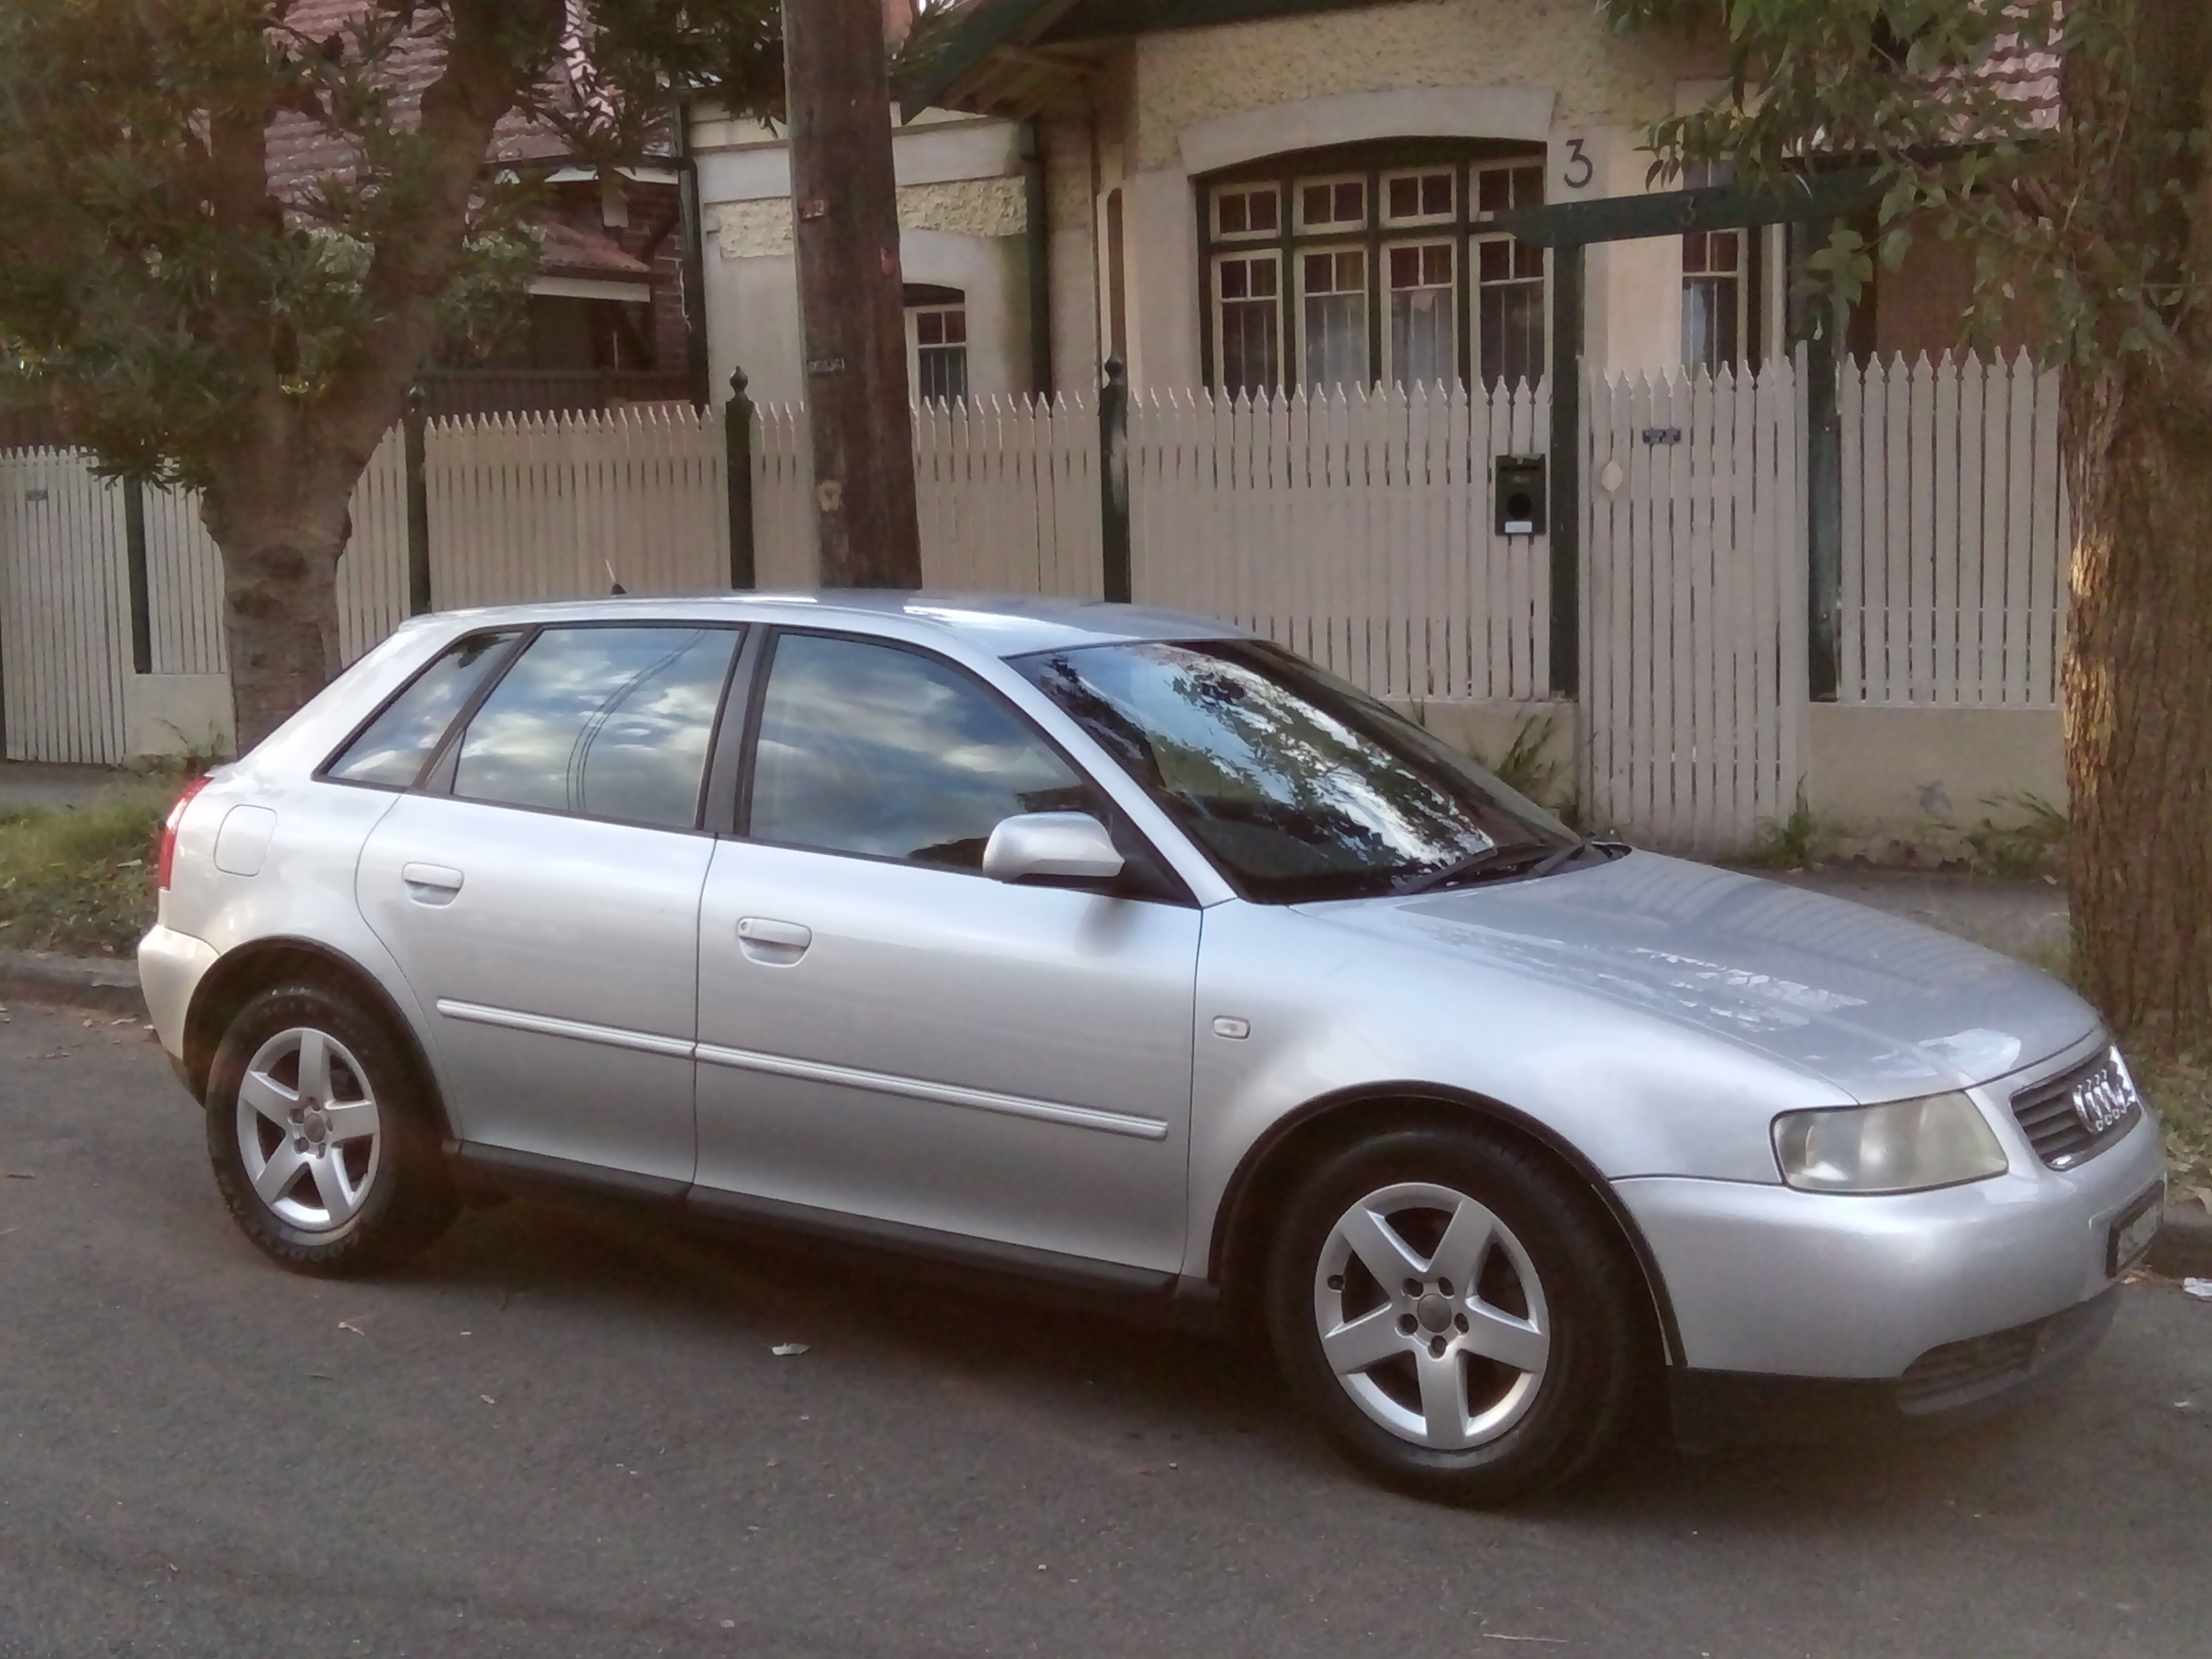 Picture of Angelina's 2002 Audi A3